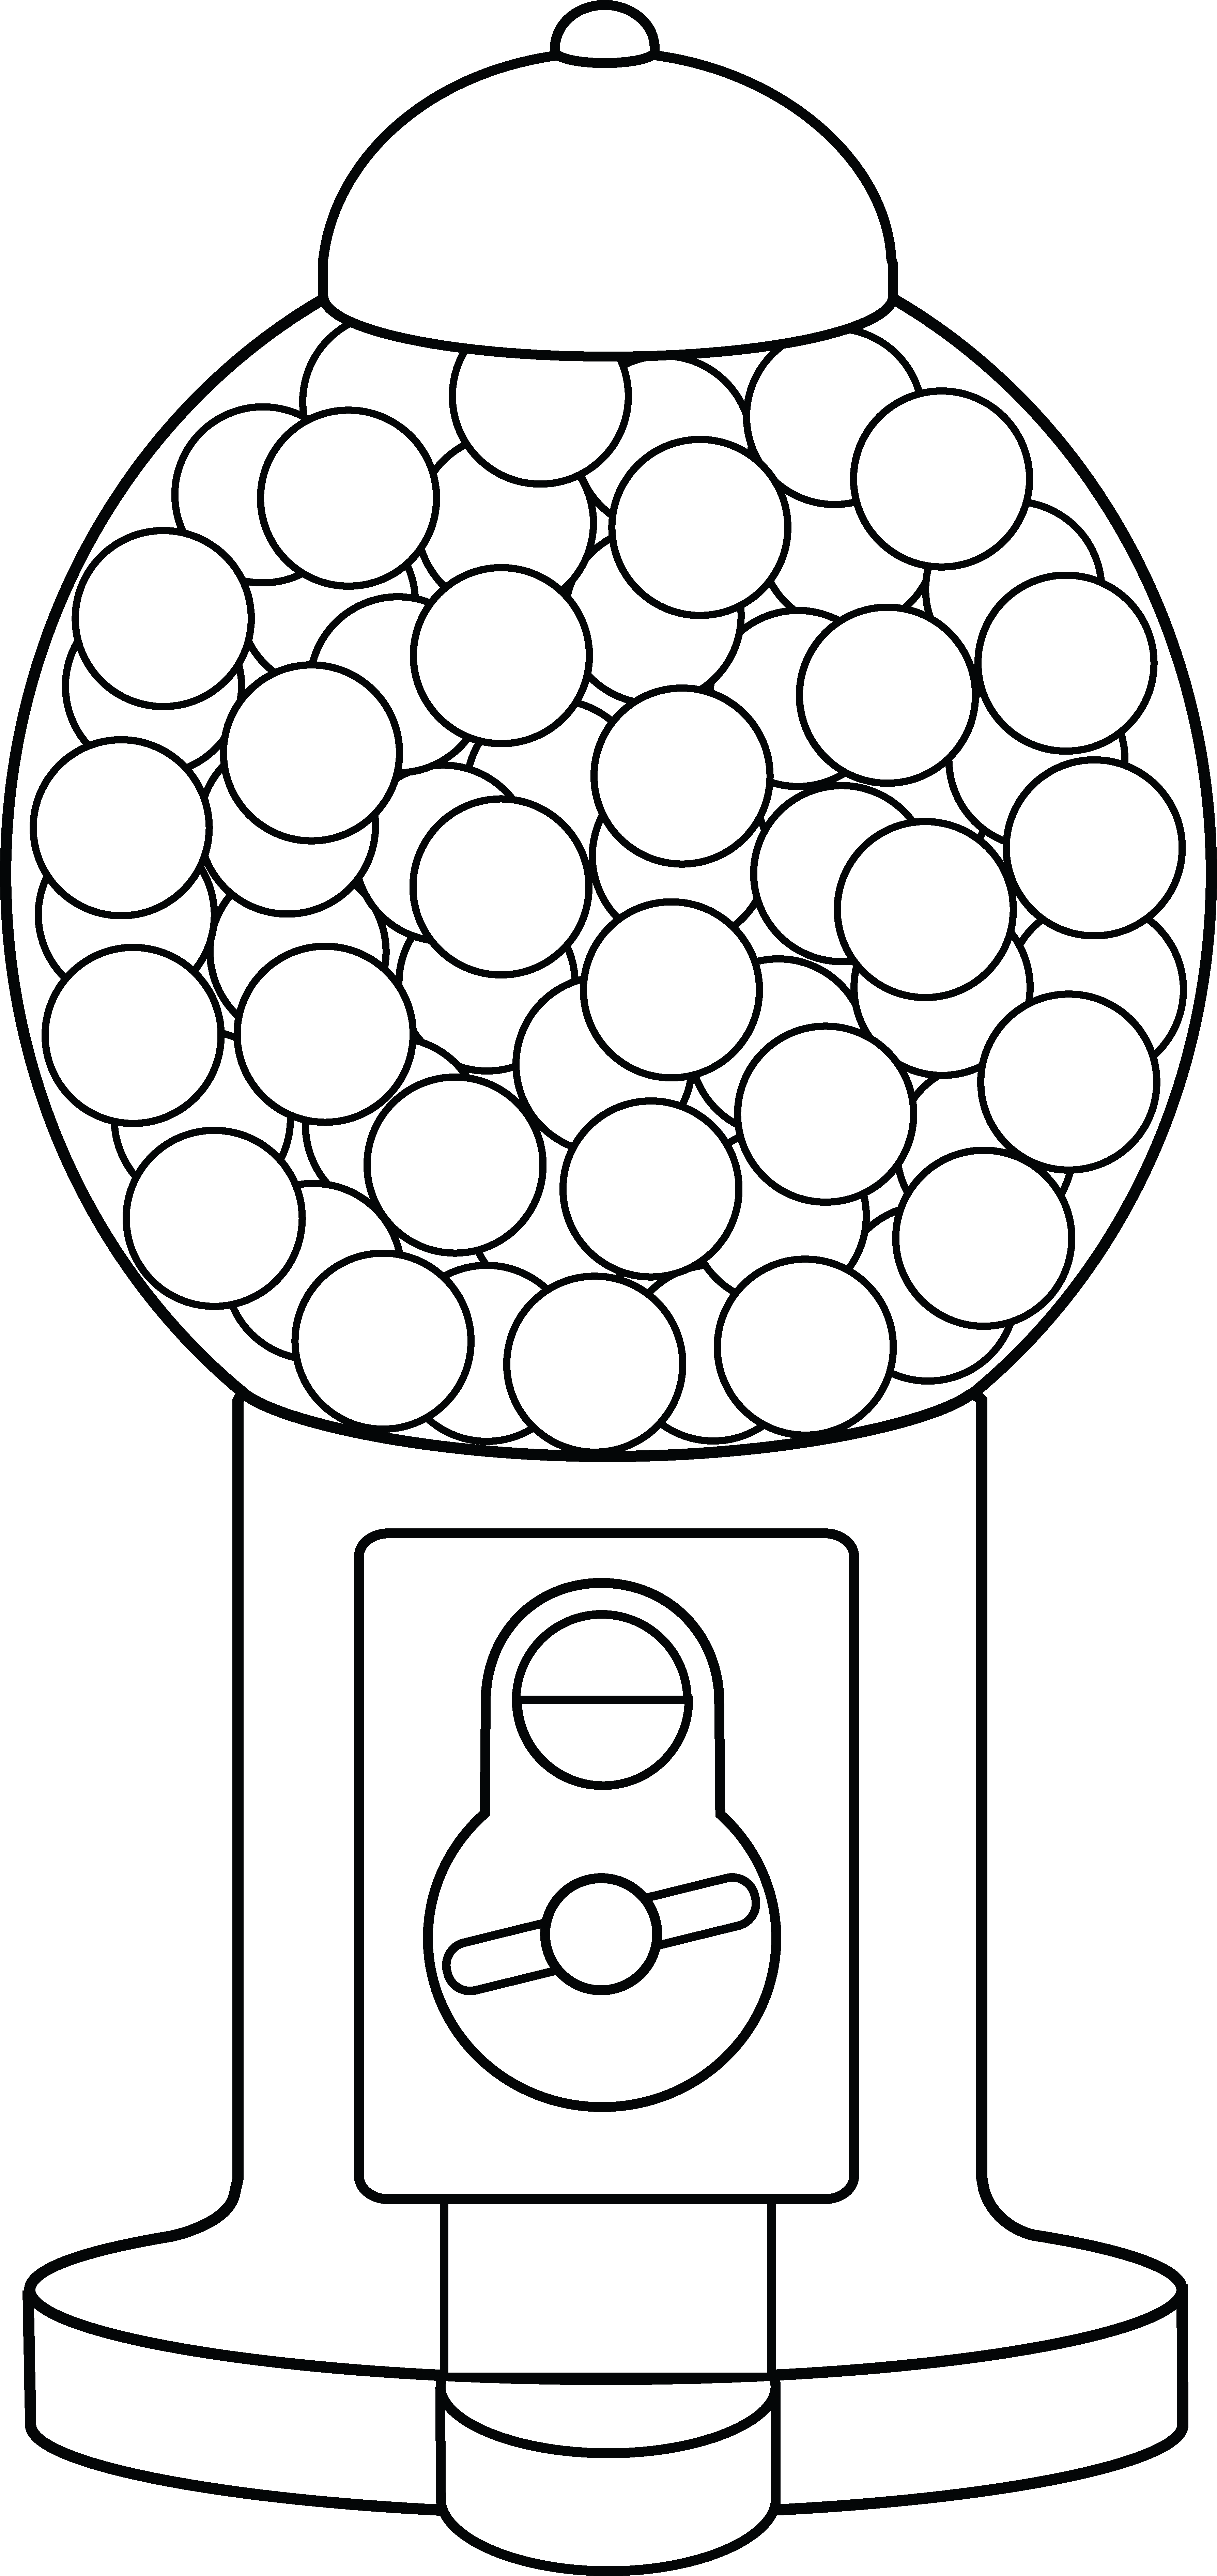 Gumball Machine Coloring Page Free Clip Art Candy Coloring Pages Coloring Pages Coloring Pages For Kids